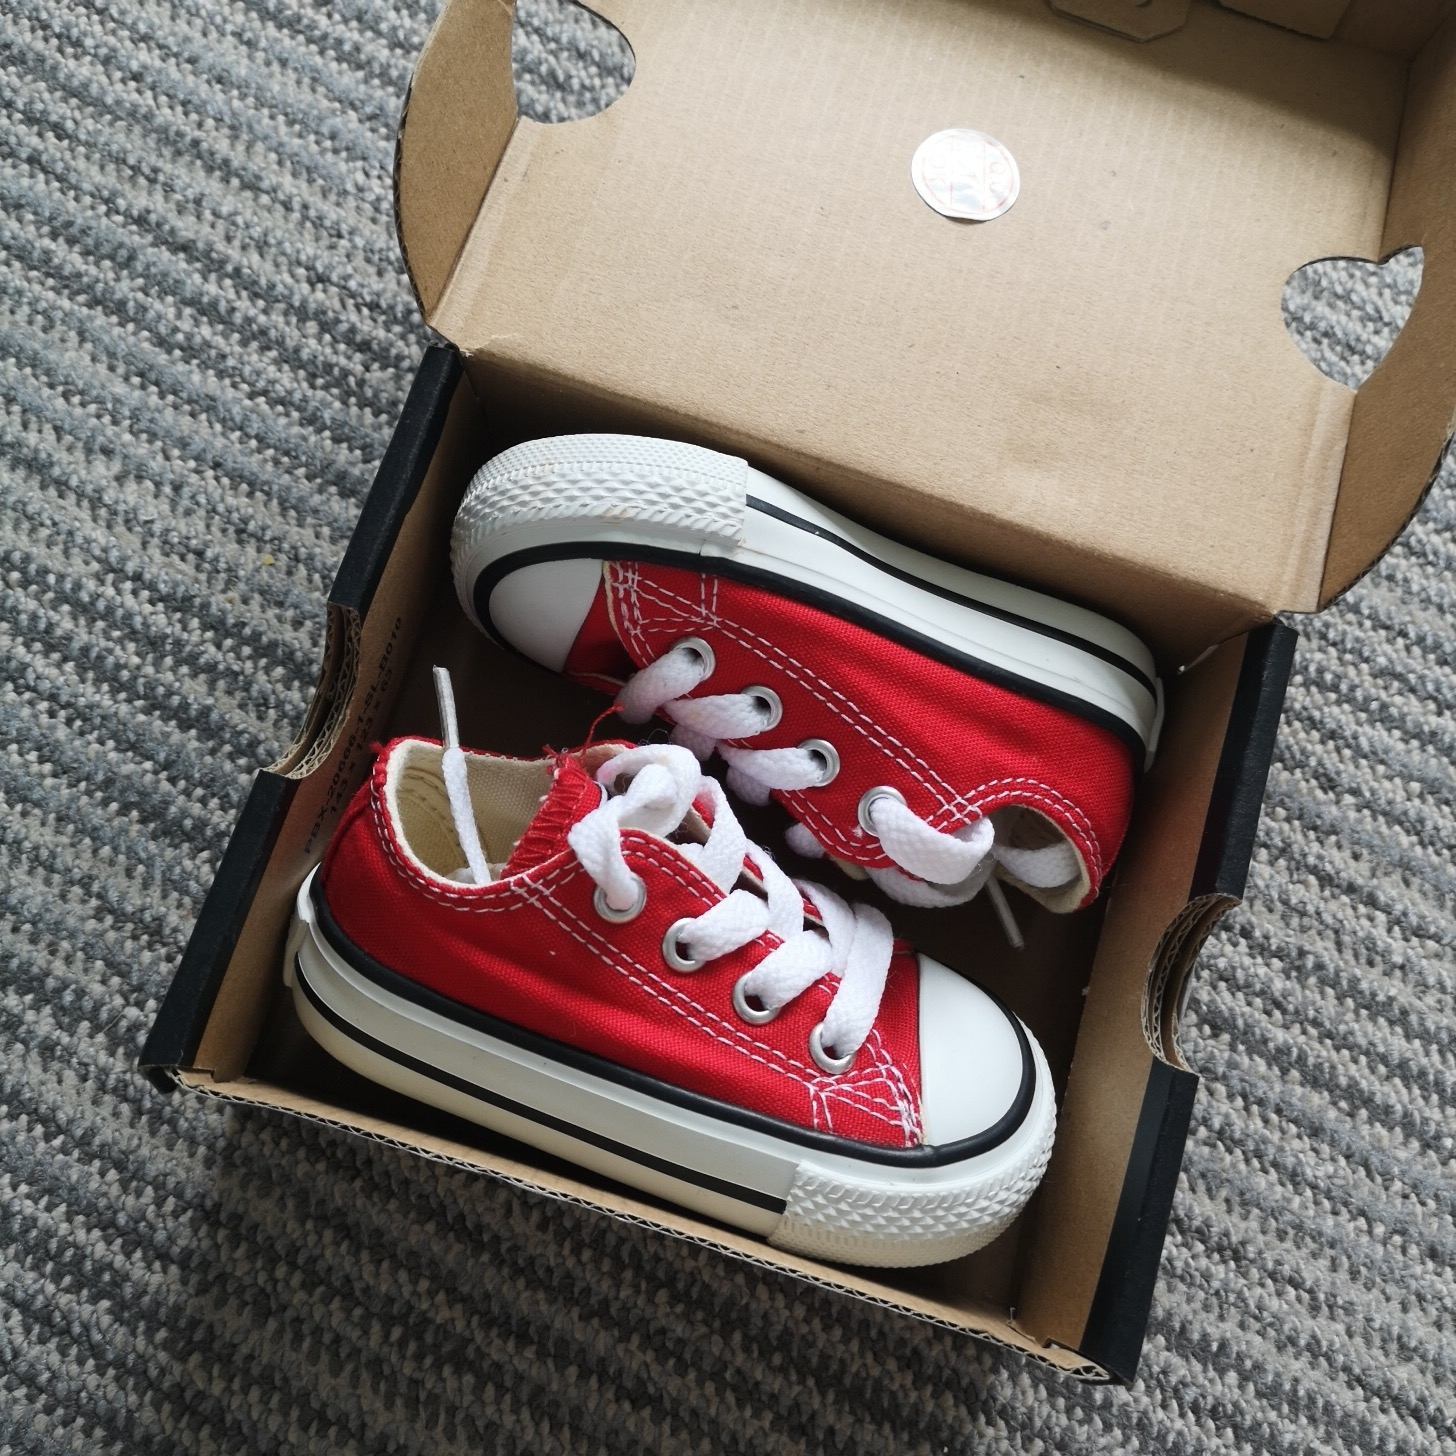 Infant size 3 baby converse in red Worn